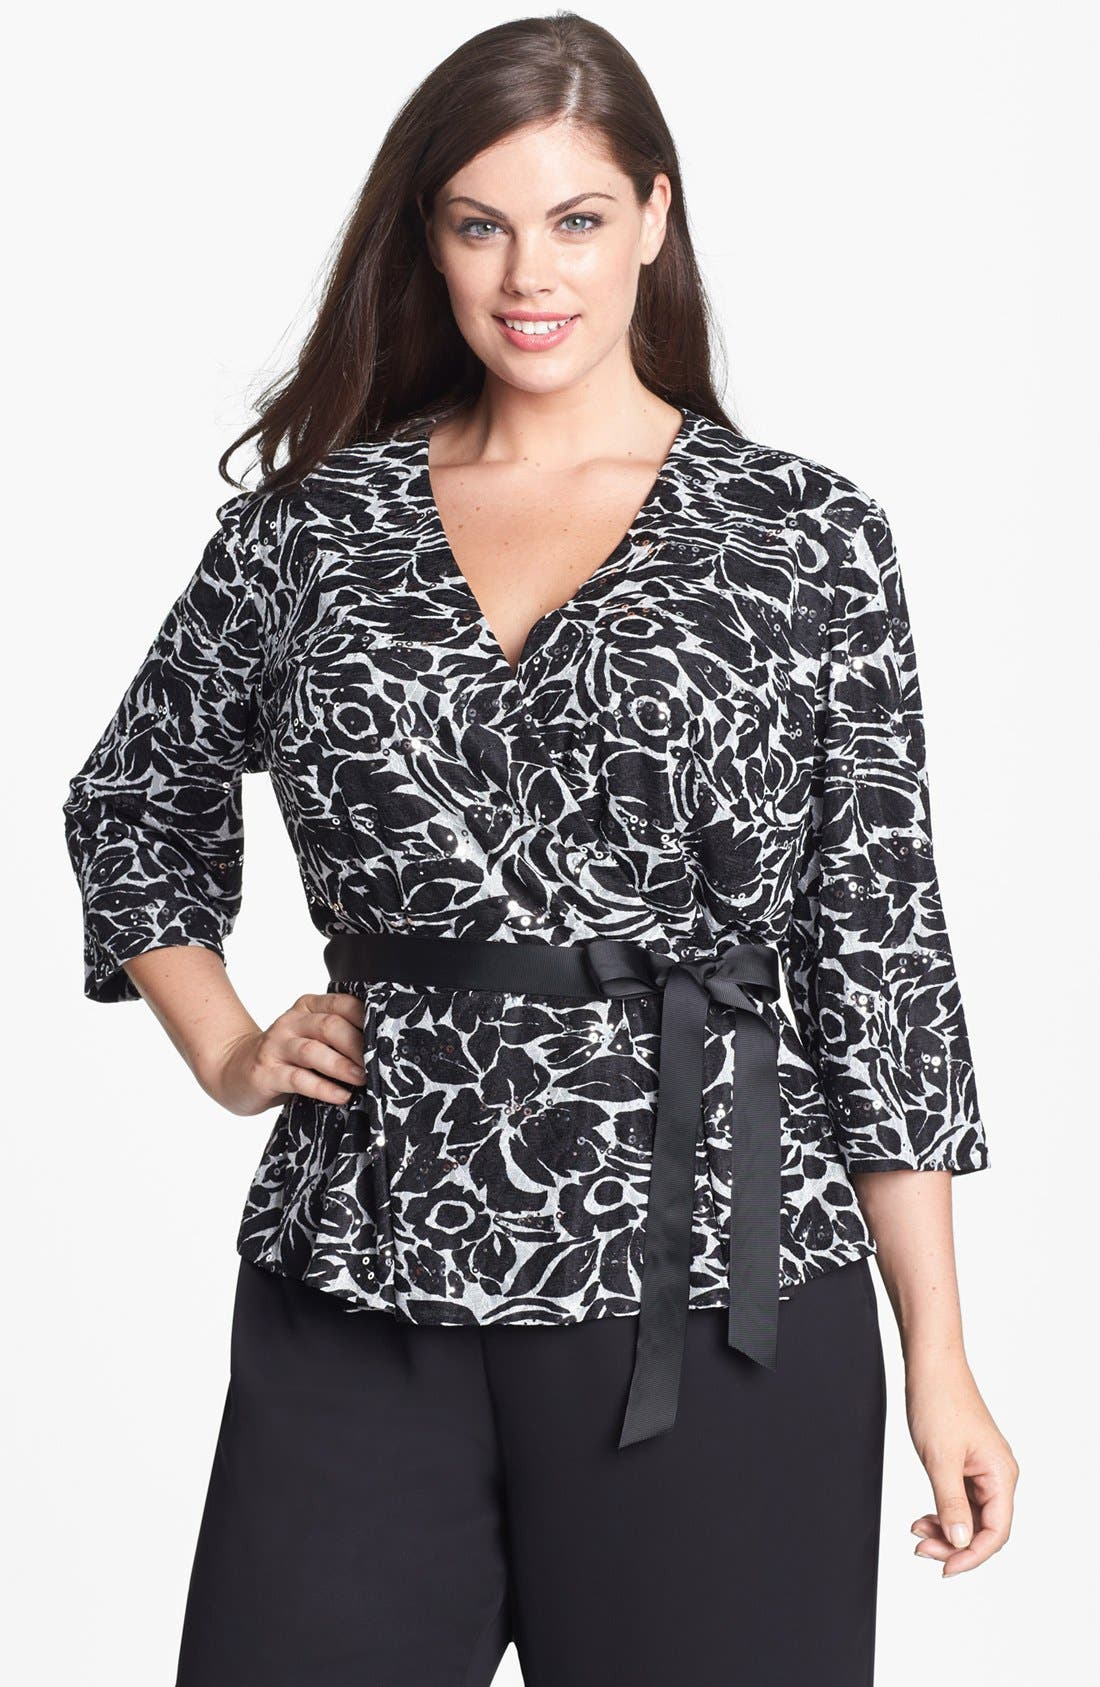 Alternate Image 1 Selected - Alex Evenings Embellished Faux Wrap Blouse (Plus Size)